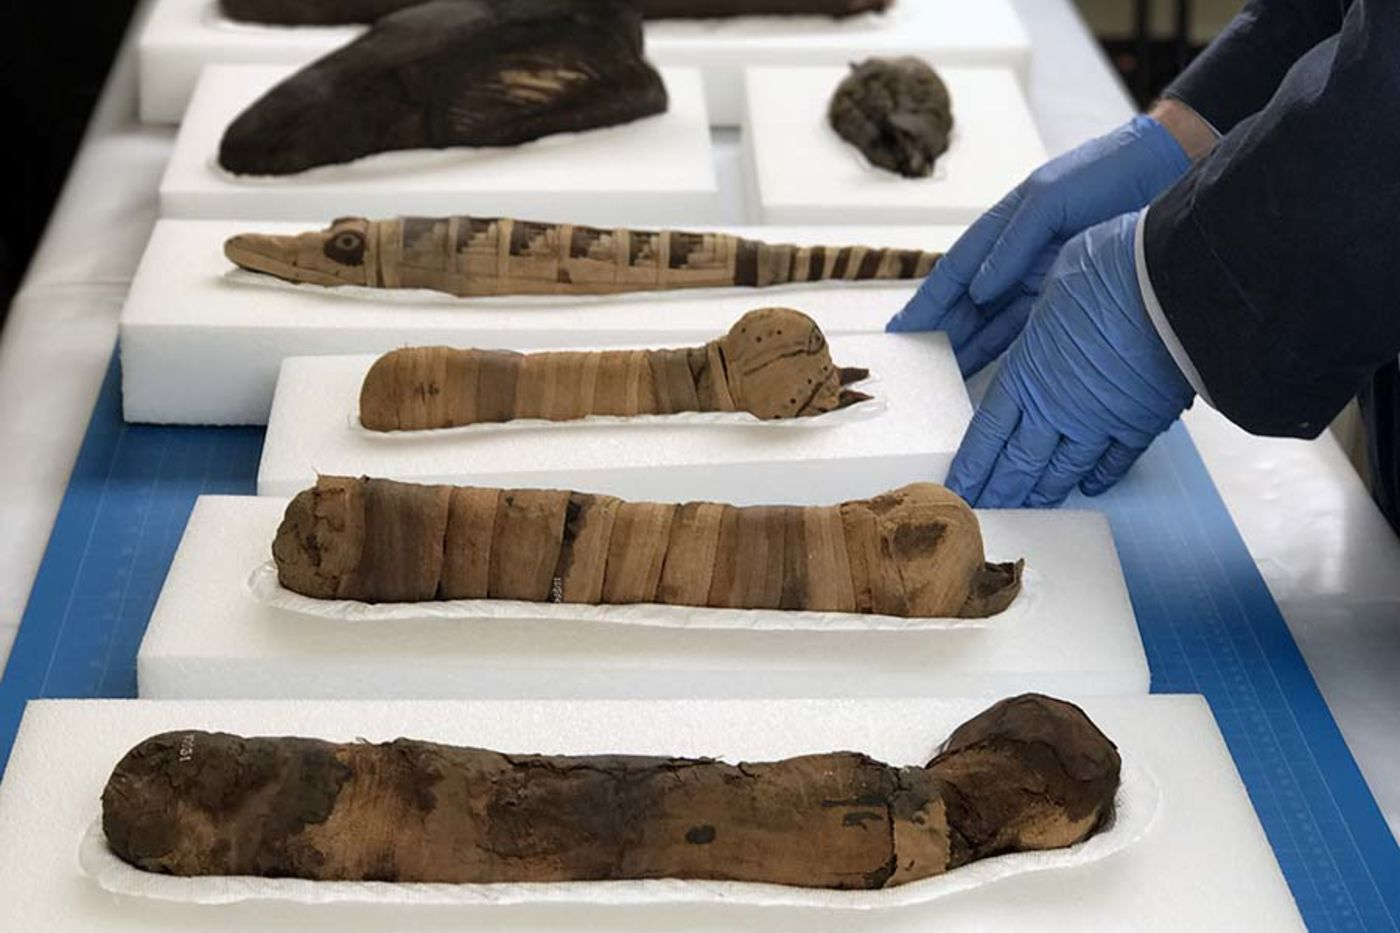 Several wrapped animal mummies resting on white foam on a table. Hands in blue gloves pick up one of the foam blocks.